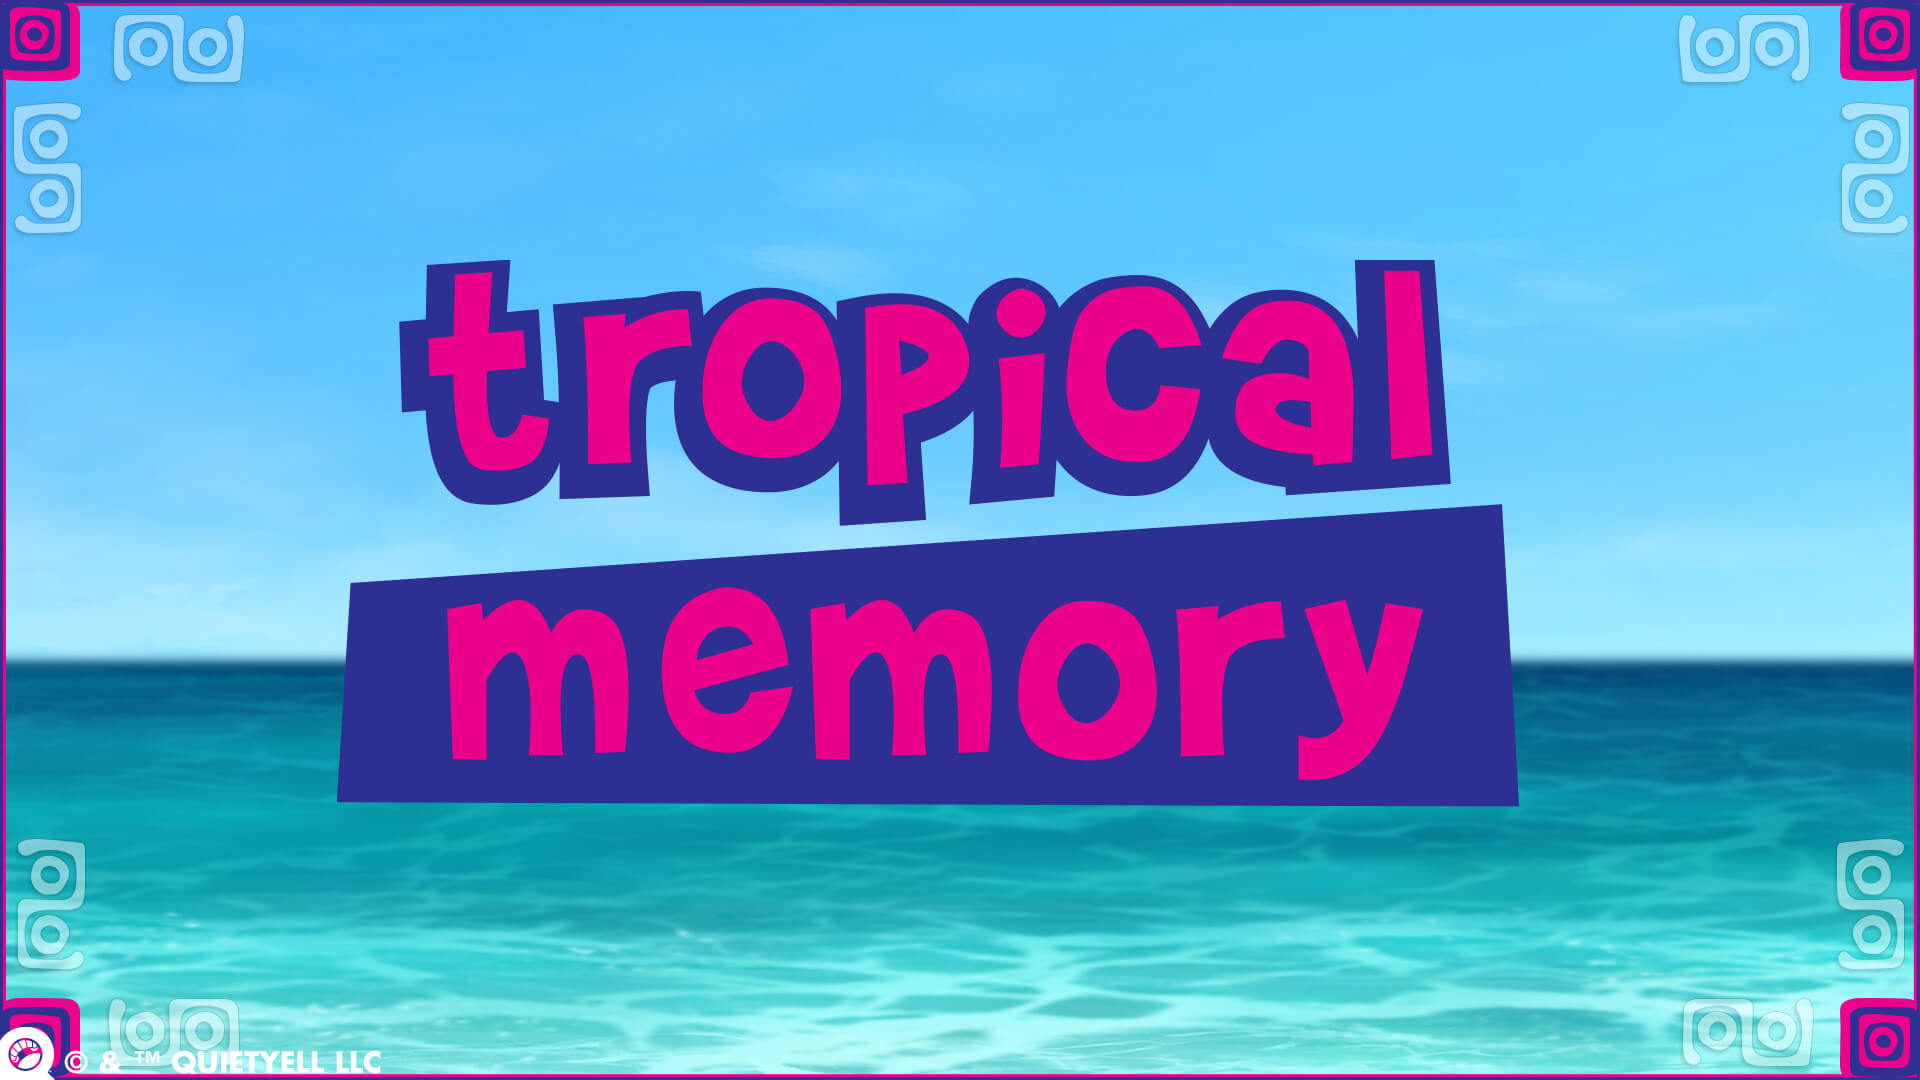 Tropical Memory Promotional Game Logo by Scott Monaco of QuietYell™ | www.QuietYell.com